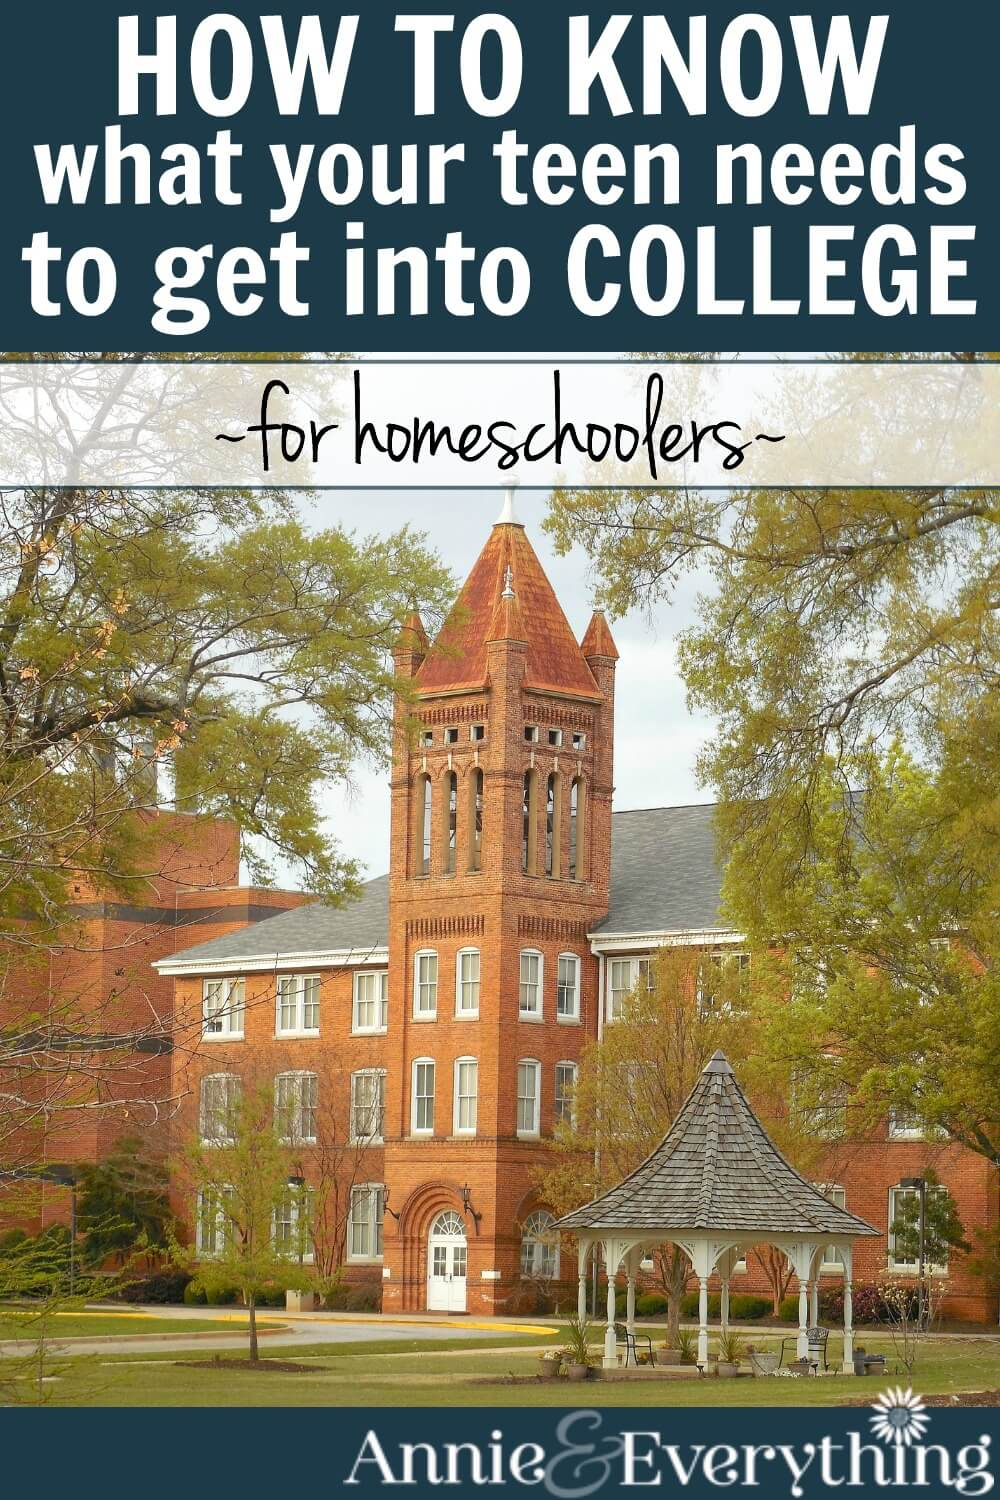 Everyone should do this simple thing to know what it takes for a homeschooled teen to get into college. It's not as hard as you think! Ease your fears about homeschooling high school now!